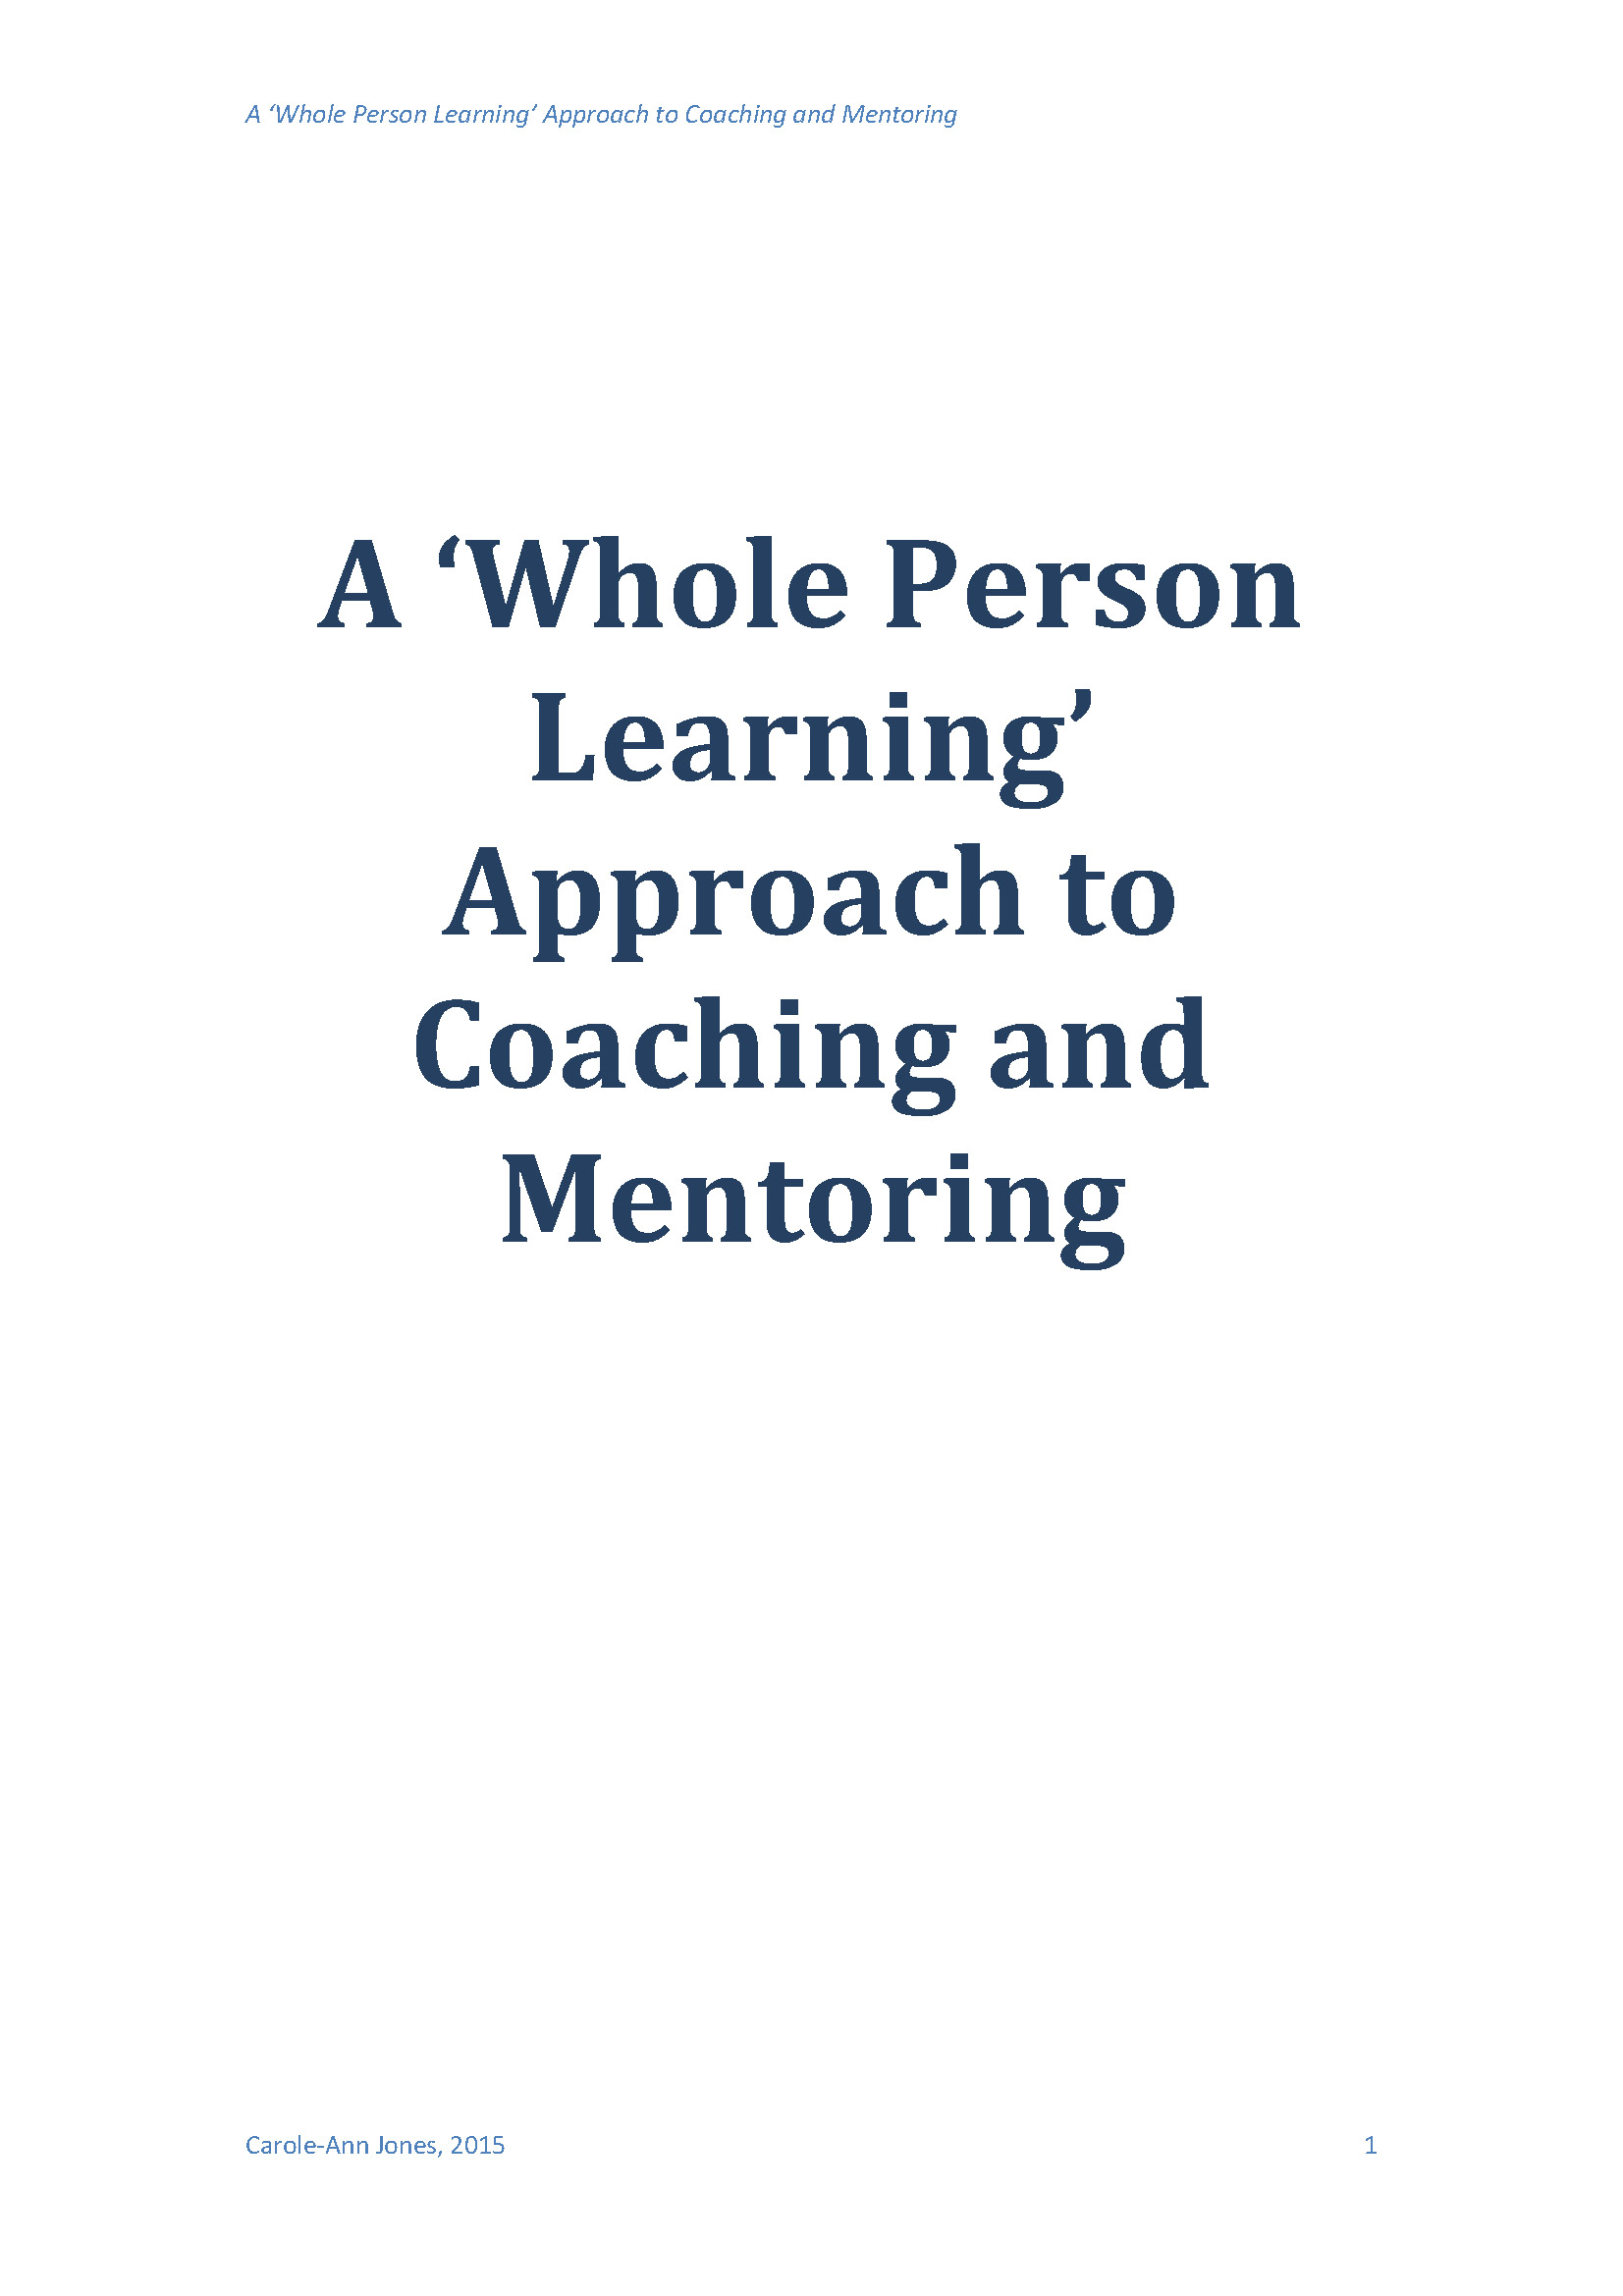 A Whole Person Learning Approach to Coaching and Mentoring